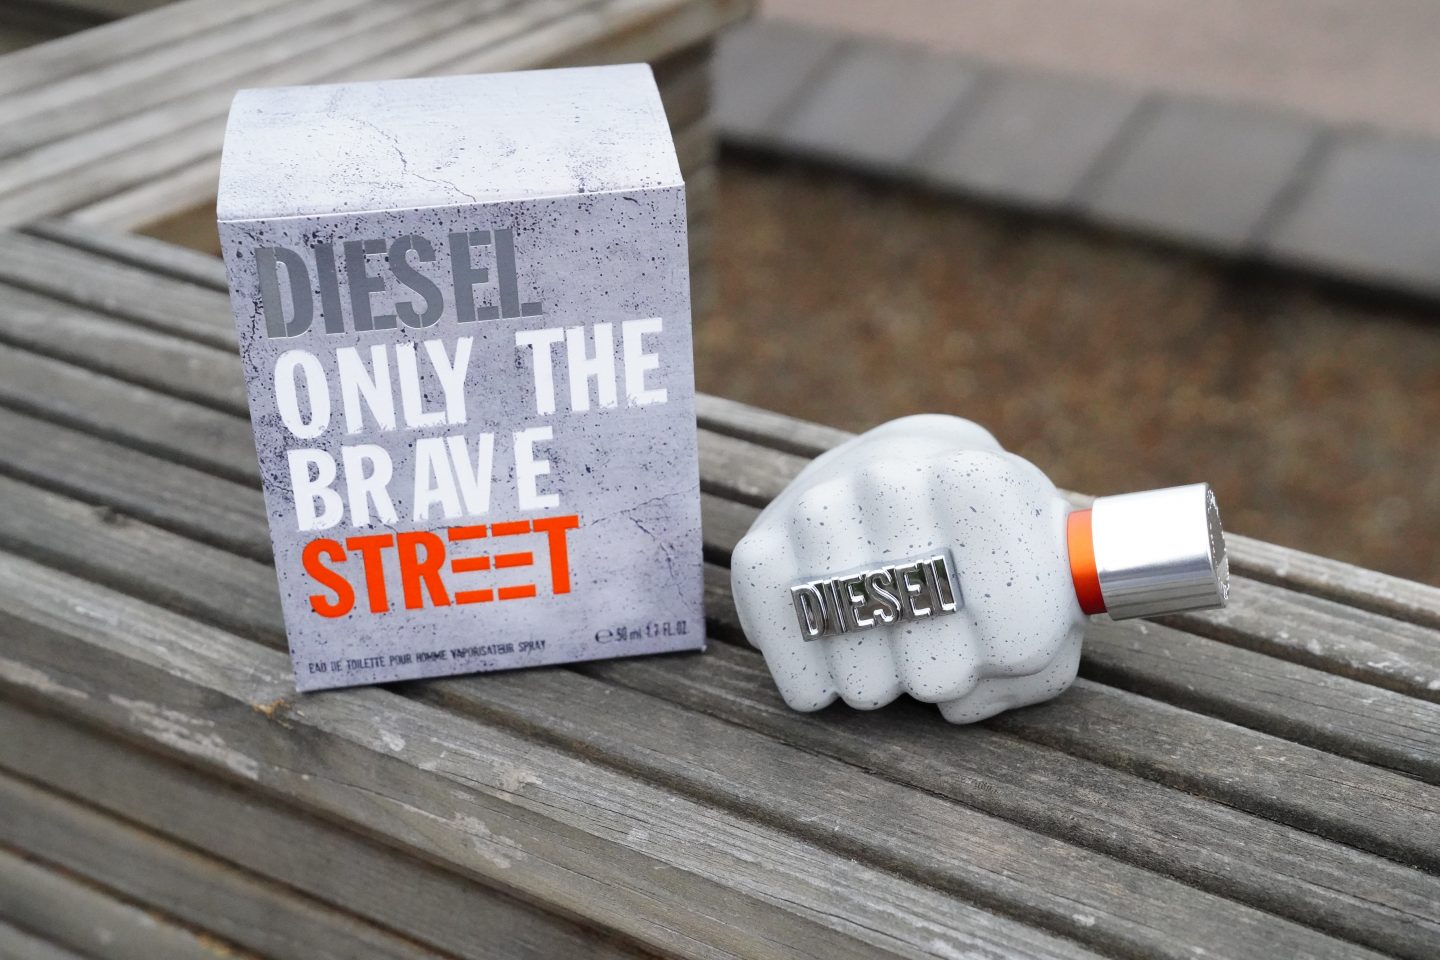 Bad Diesel Set Diesel Launches New Only The Brave Street Maketh The Man Mens